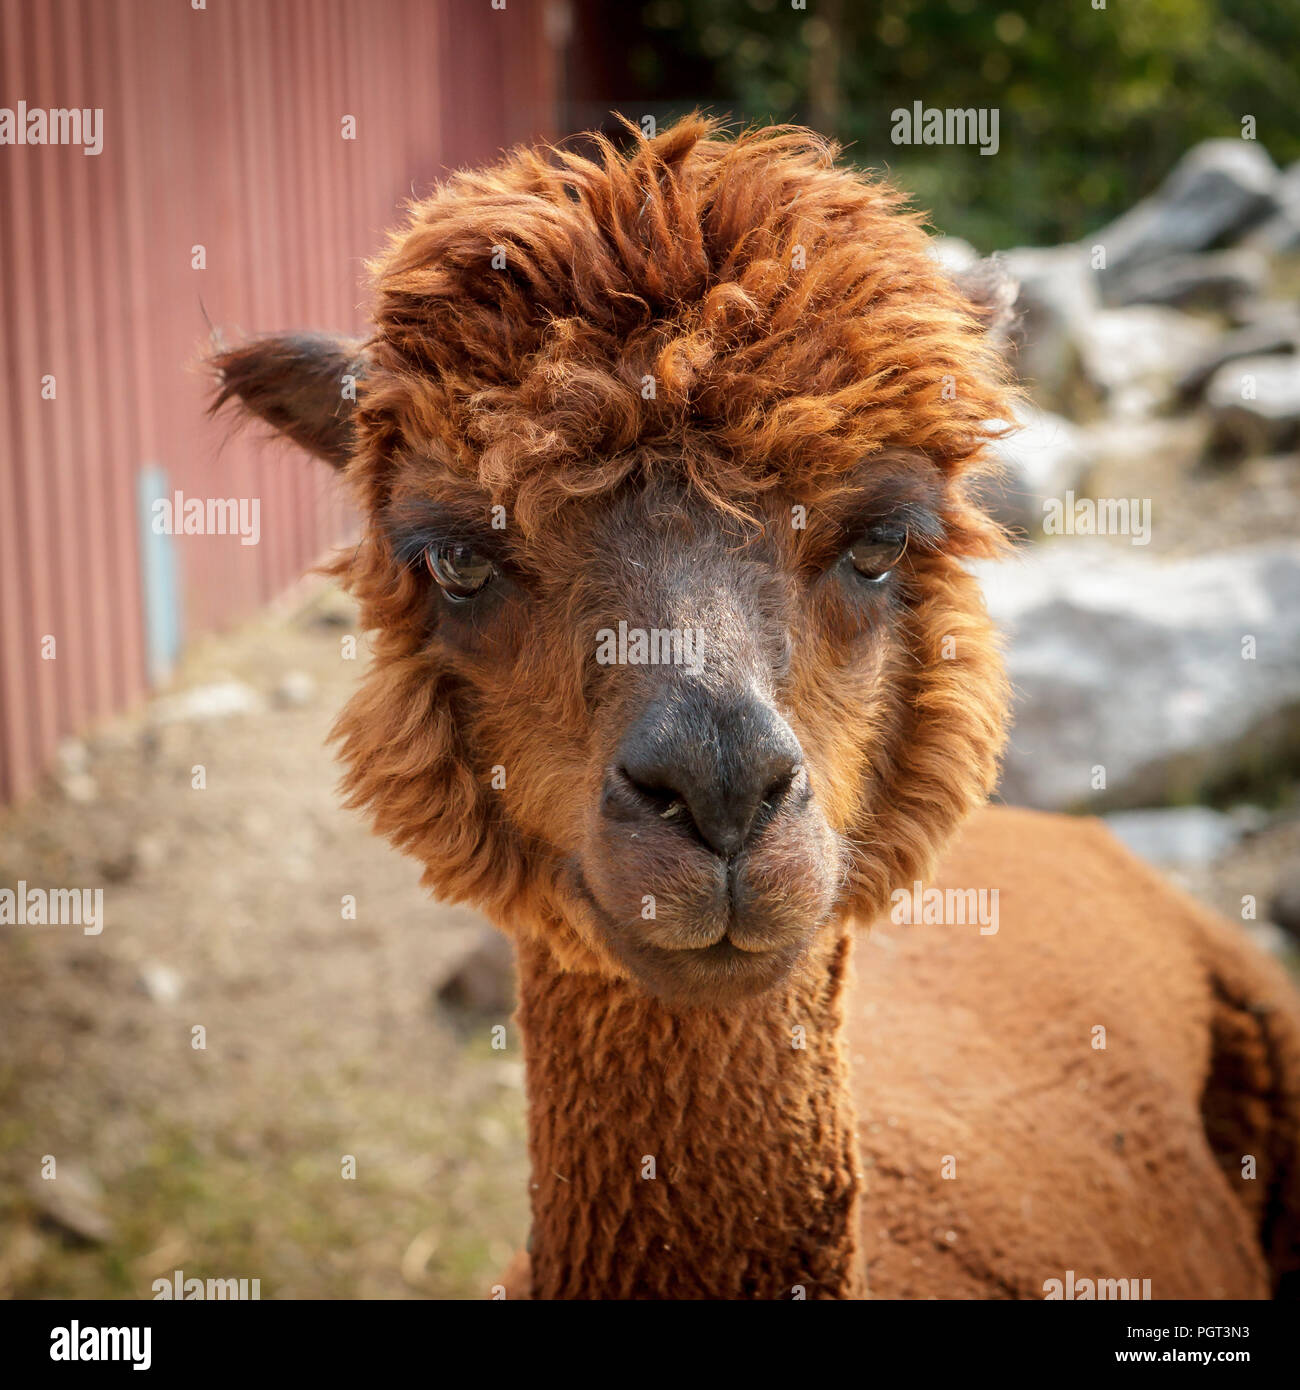 A portrait of a cute reddish brown alpaca in Coeur d'Alene, Idaho. - Stock Image